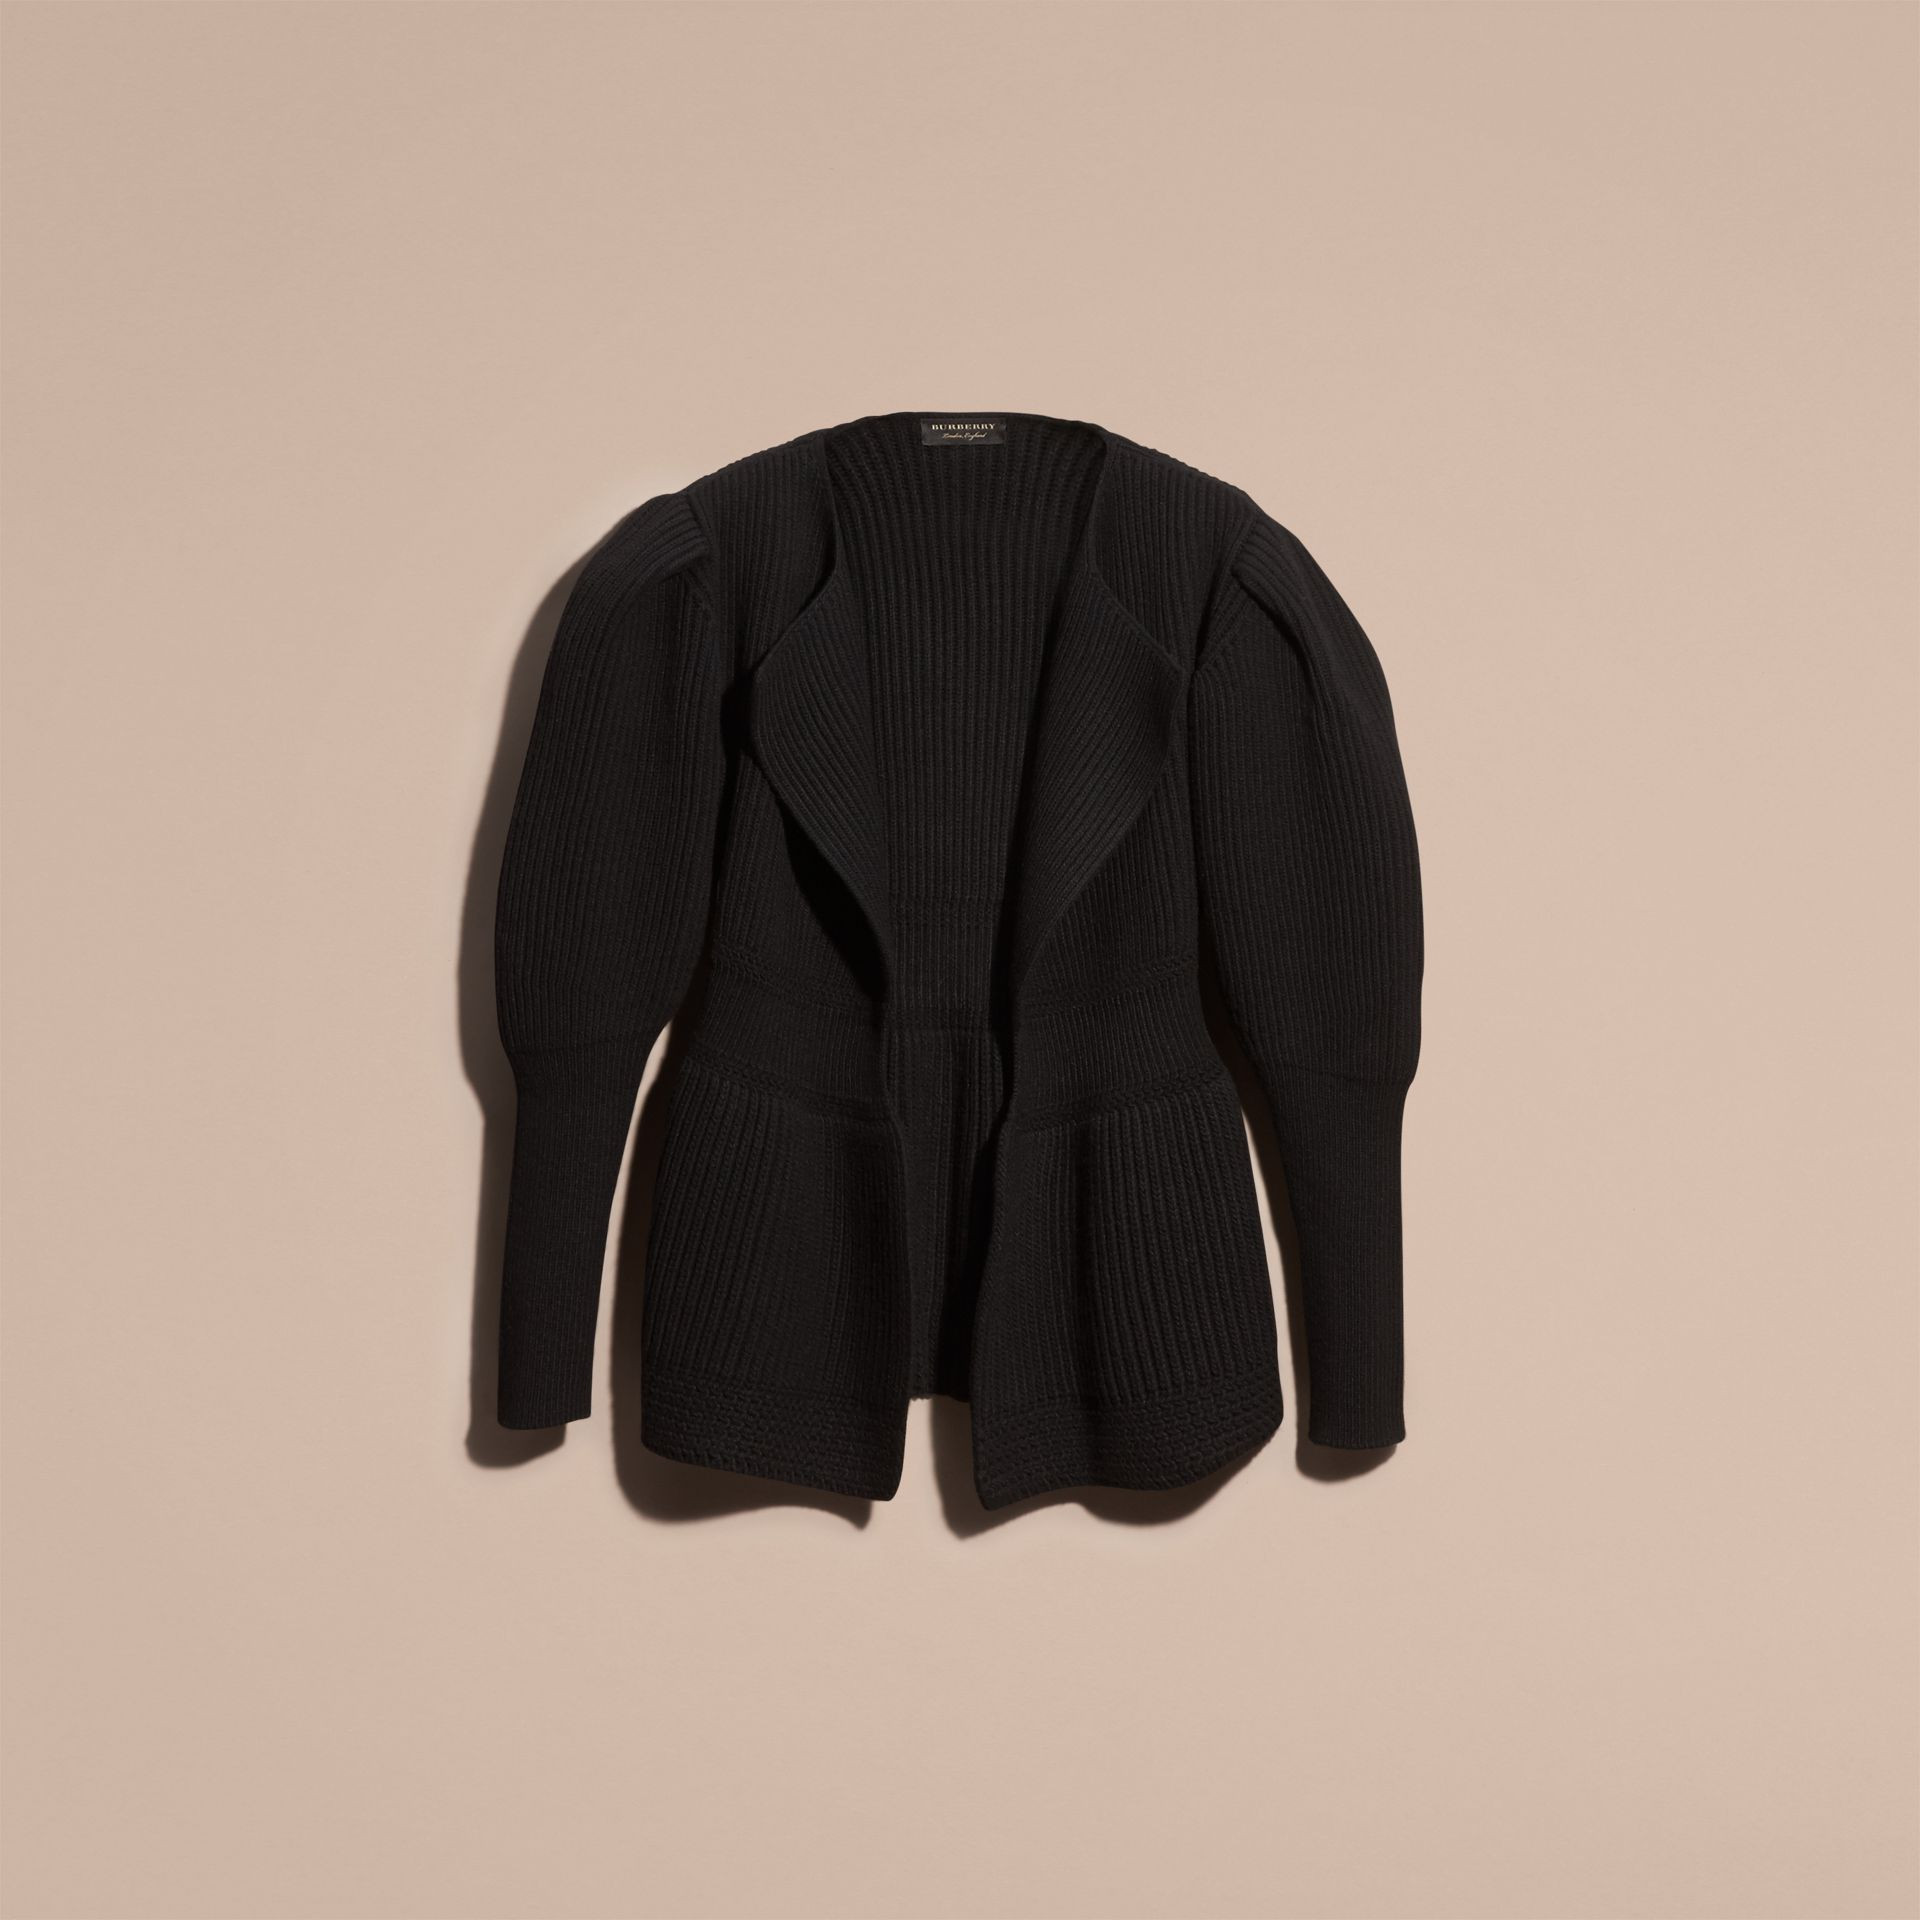 Black Wool Cashmere Peplum Cardigan with Puff Sleeves - gallery image 4